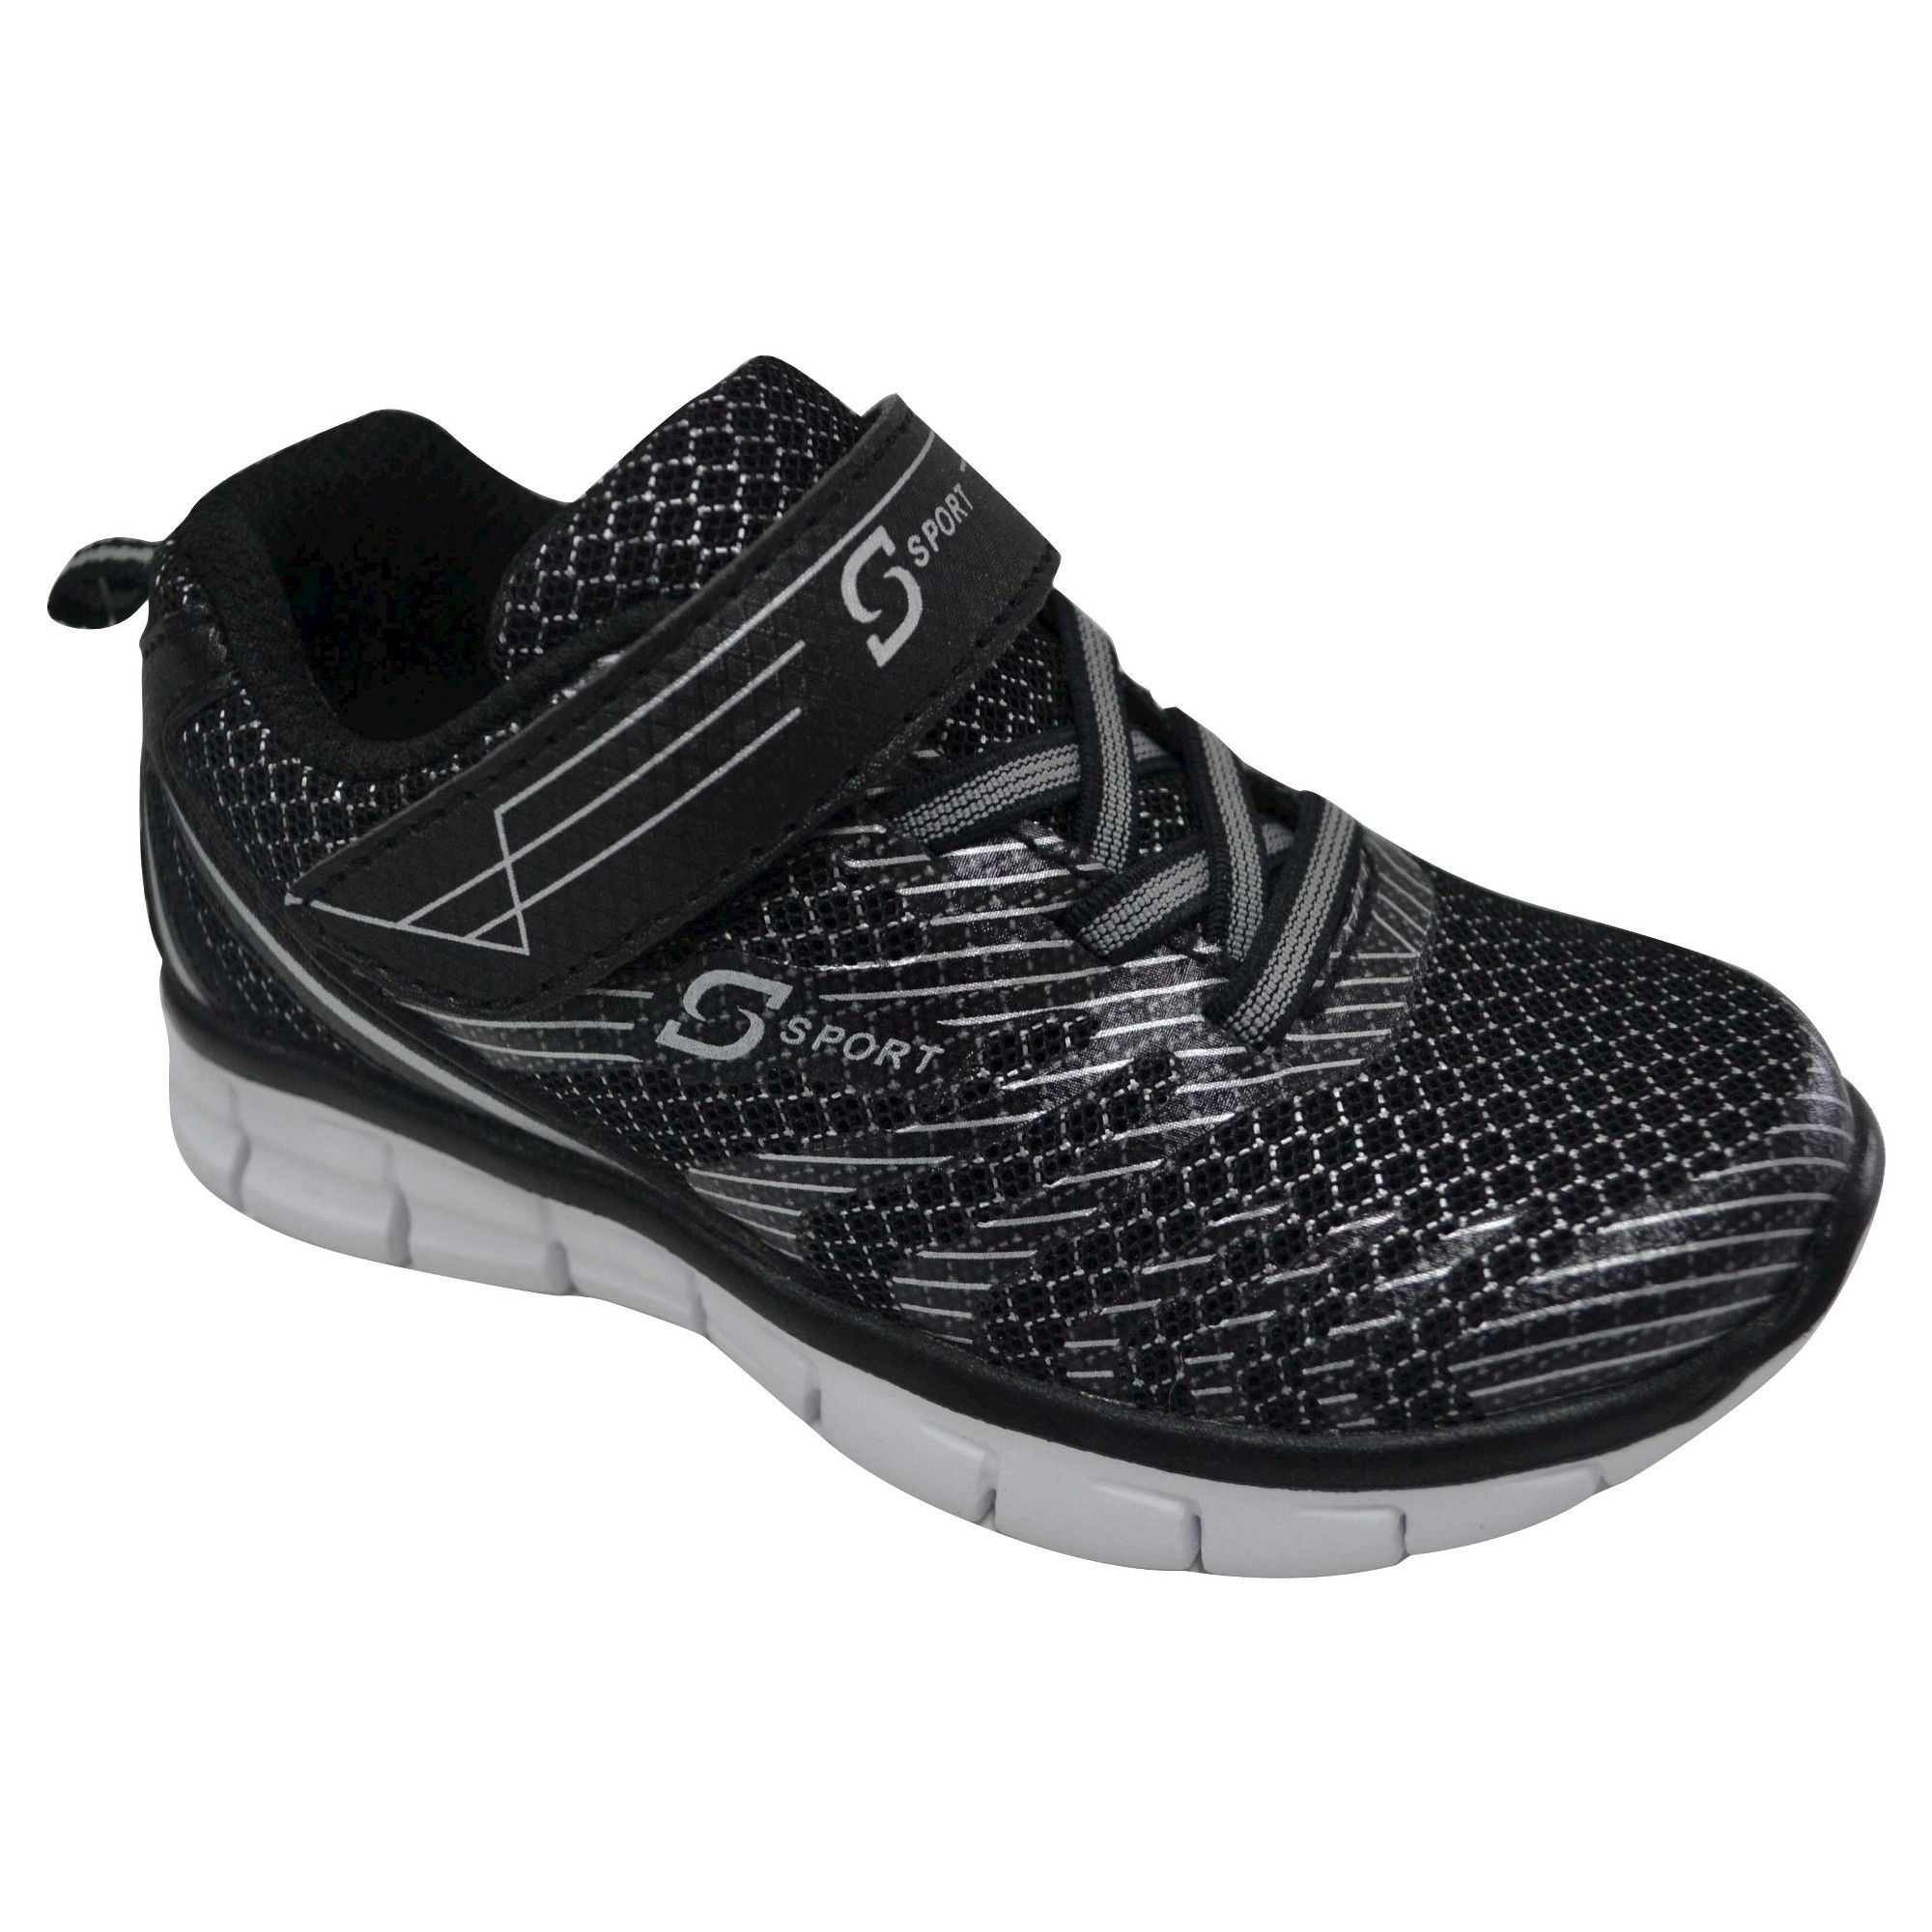 Toddler Boys S Sport By Skechers Flexx Performance Athletic Shoes